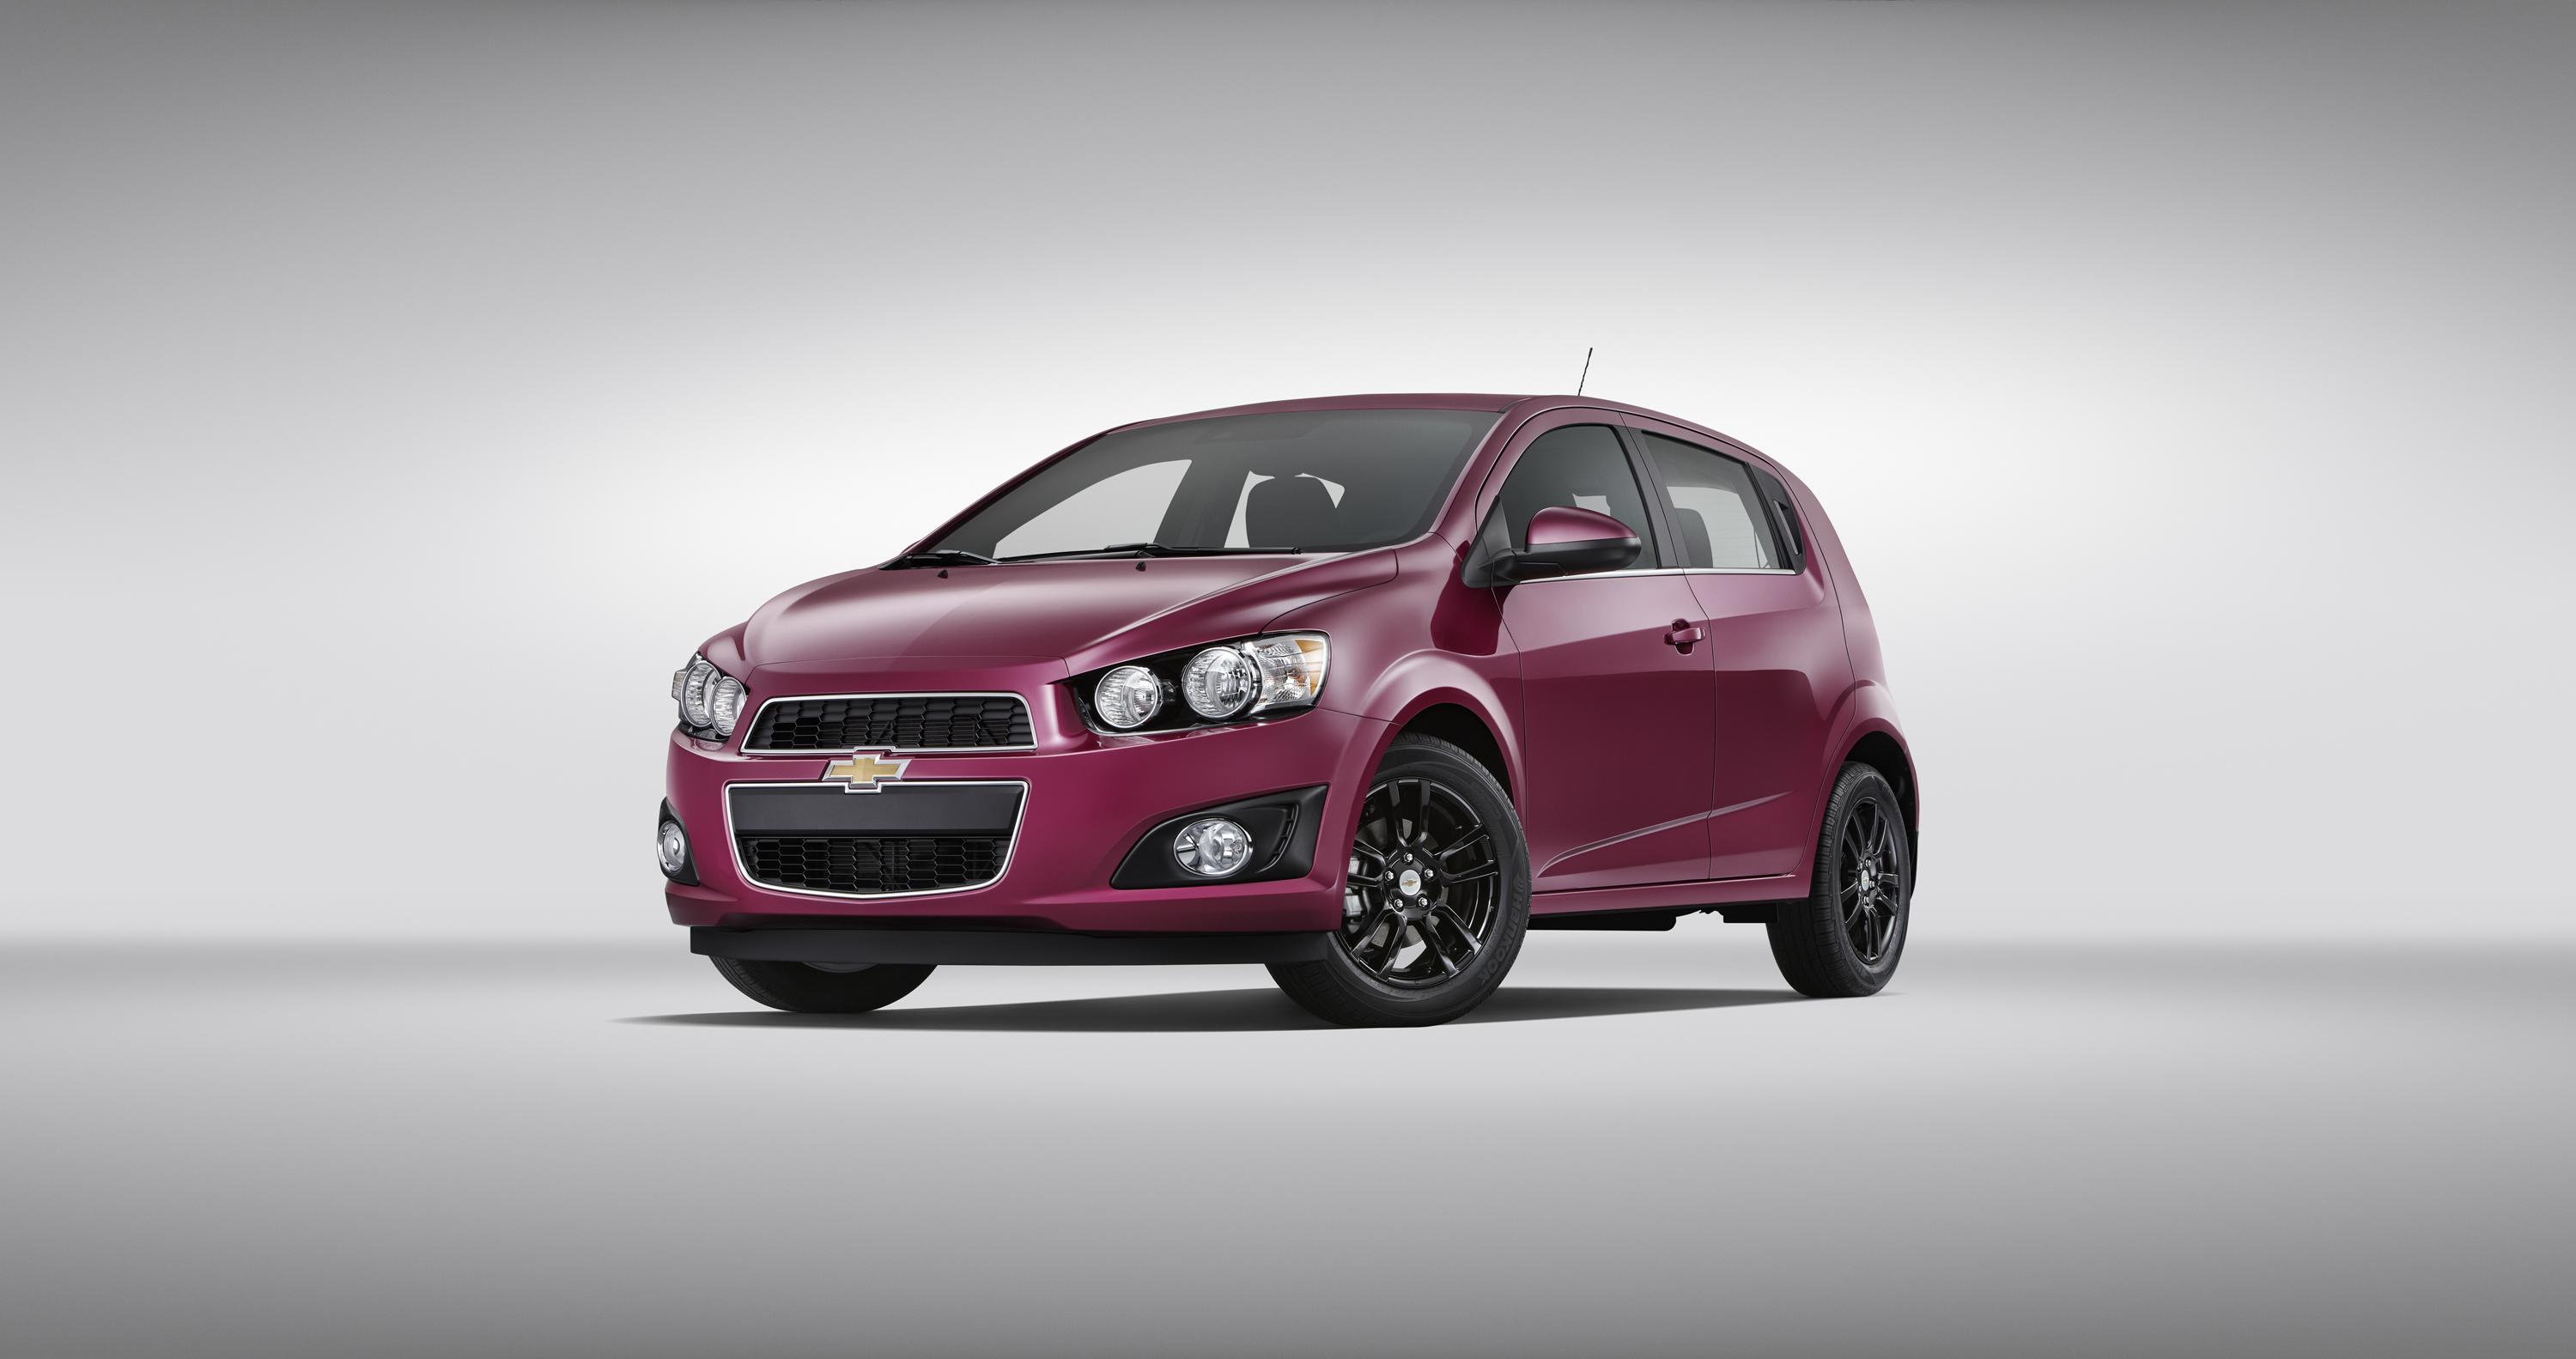 Chevrolet Sonic Repair Manual: Tire Terminology and Definitions